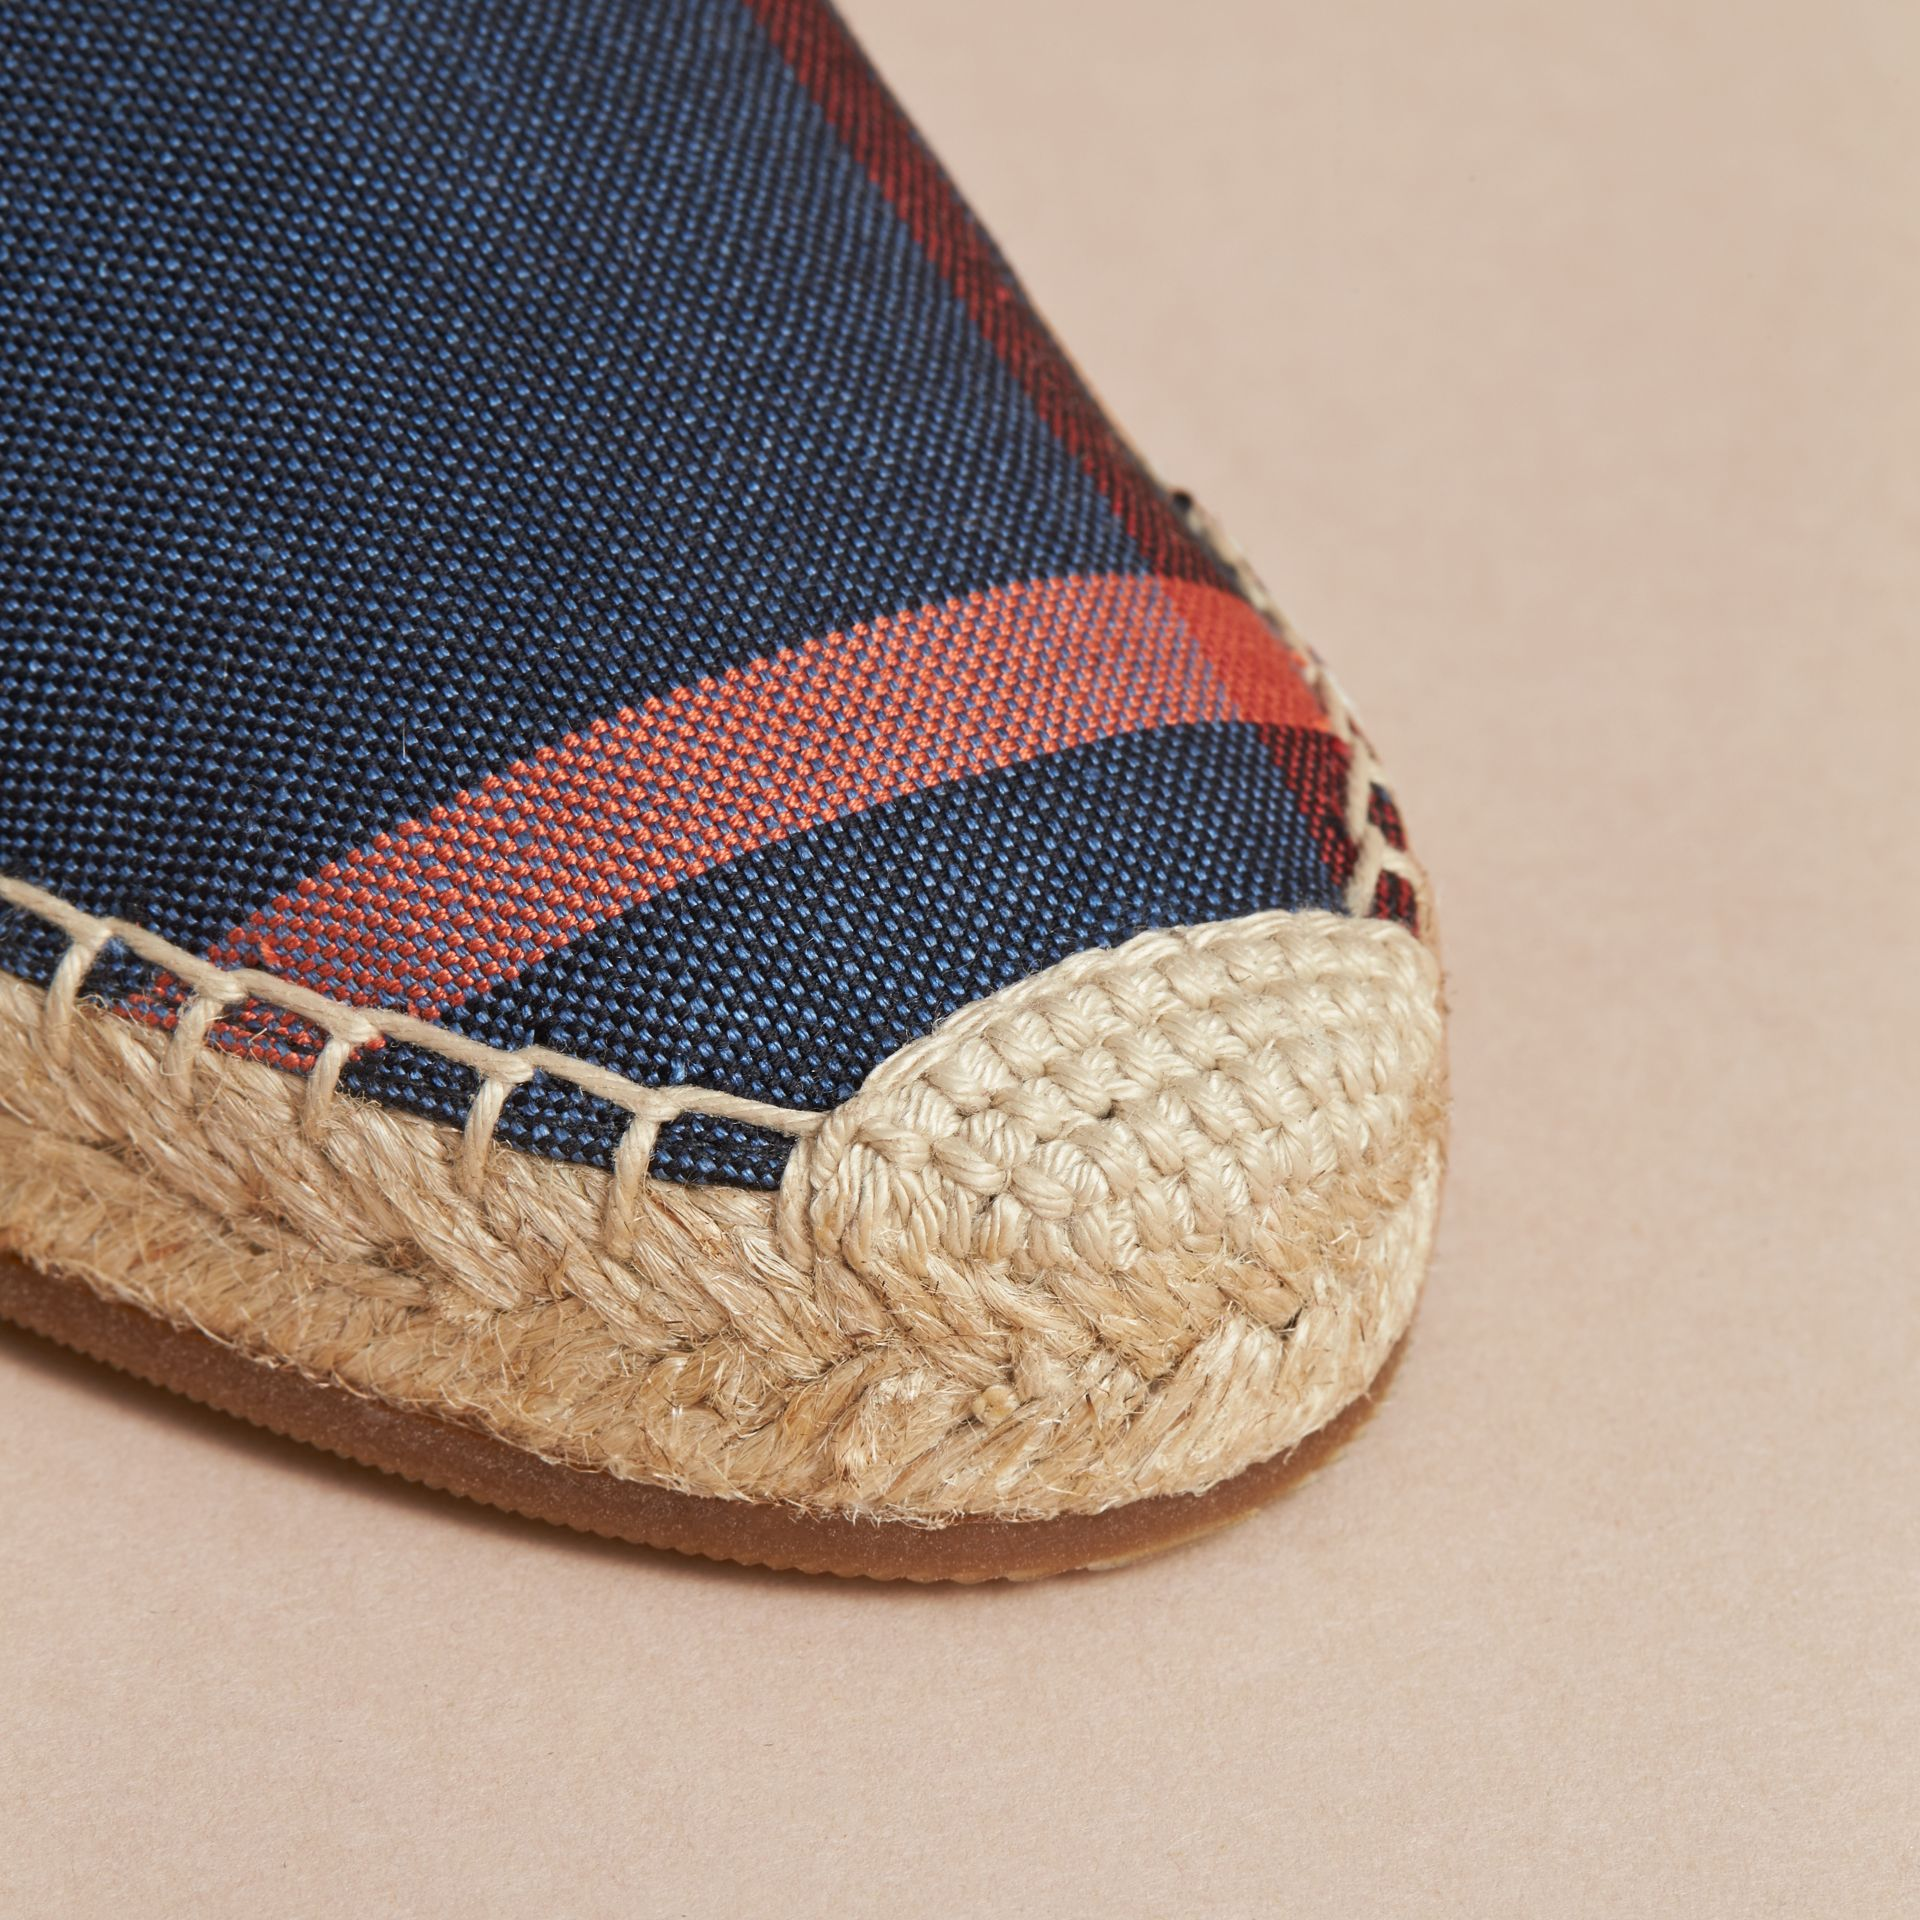 Leather and Check Linen Cotton Espadrille Sandals in Navy - Women | Burberry - gallery image 5